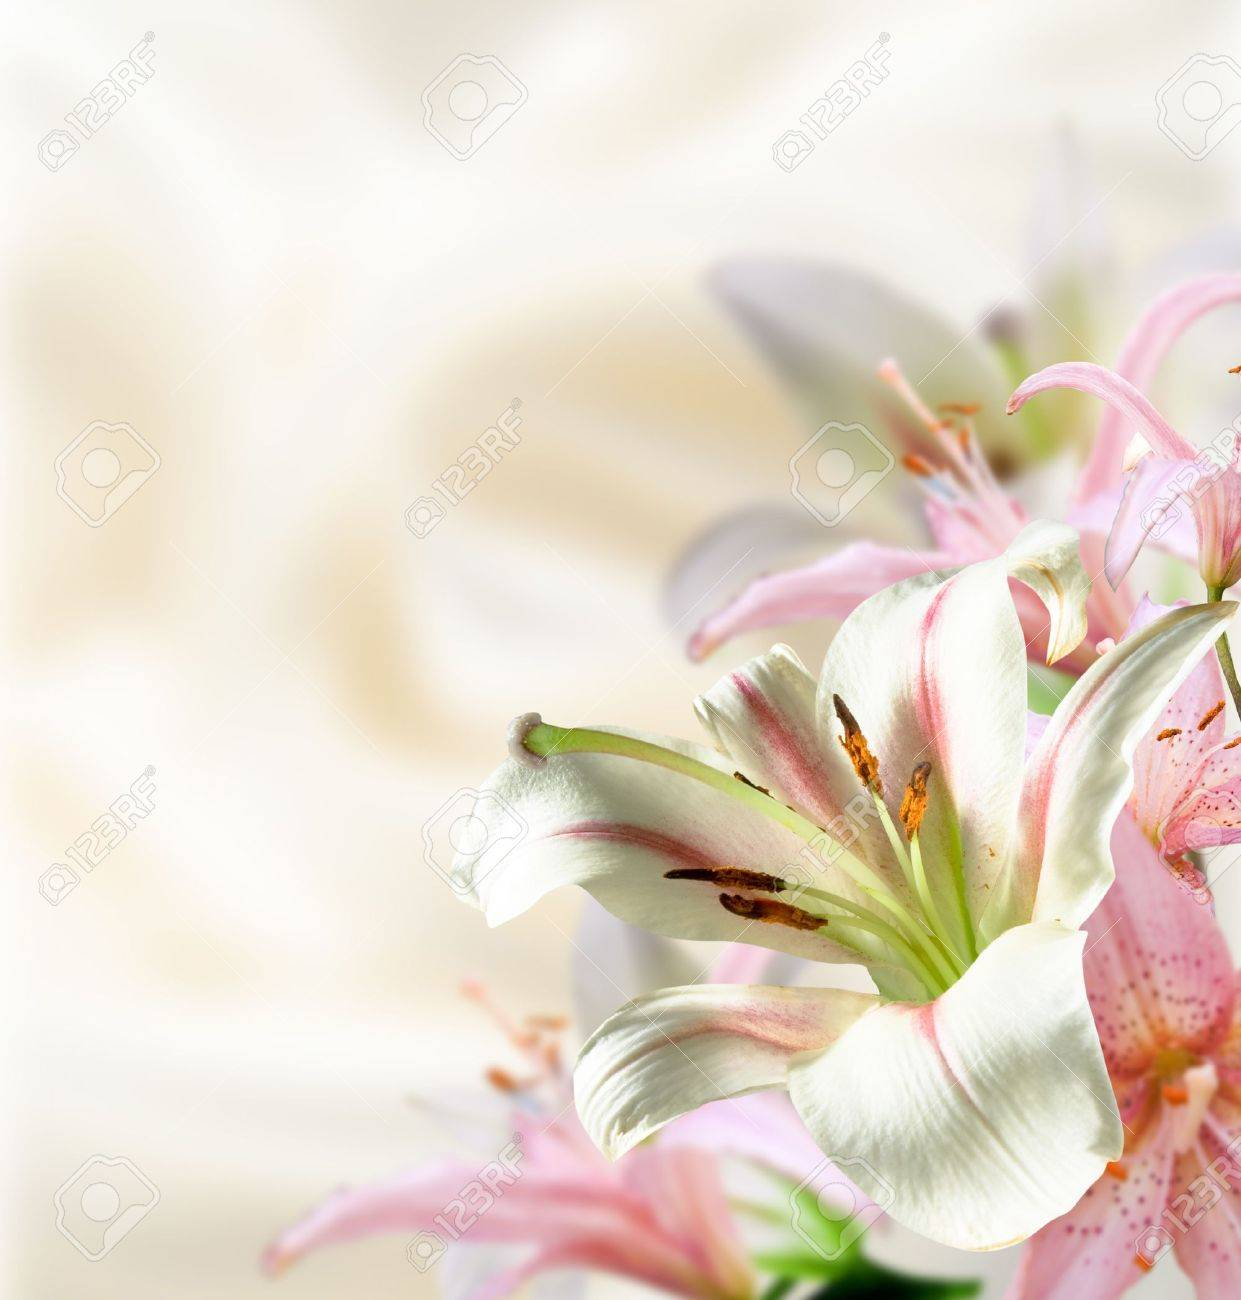 White and rose flowers lily on pastel background stock photo stock photo white and rose flowers lily on pastel background izmirmasajfo